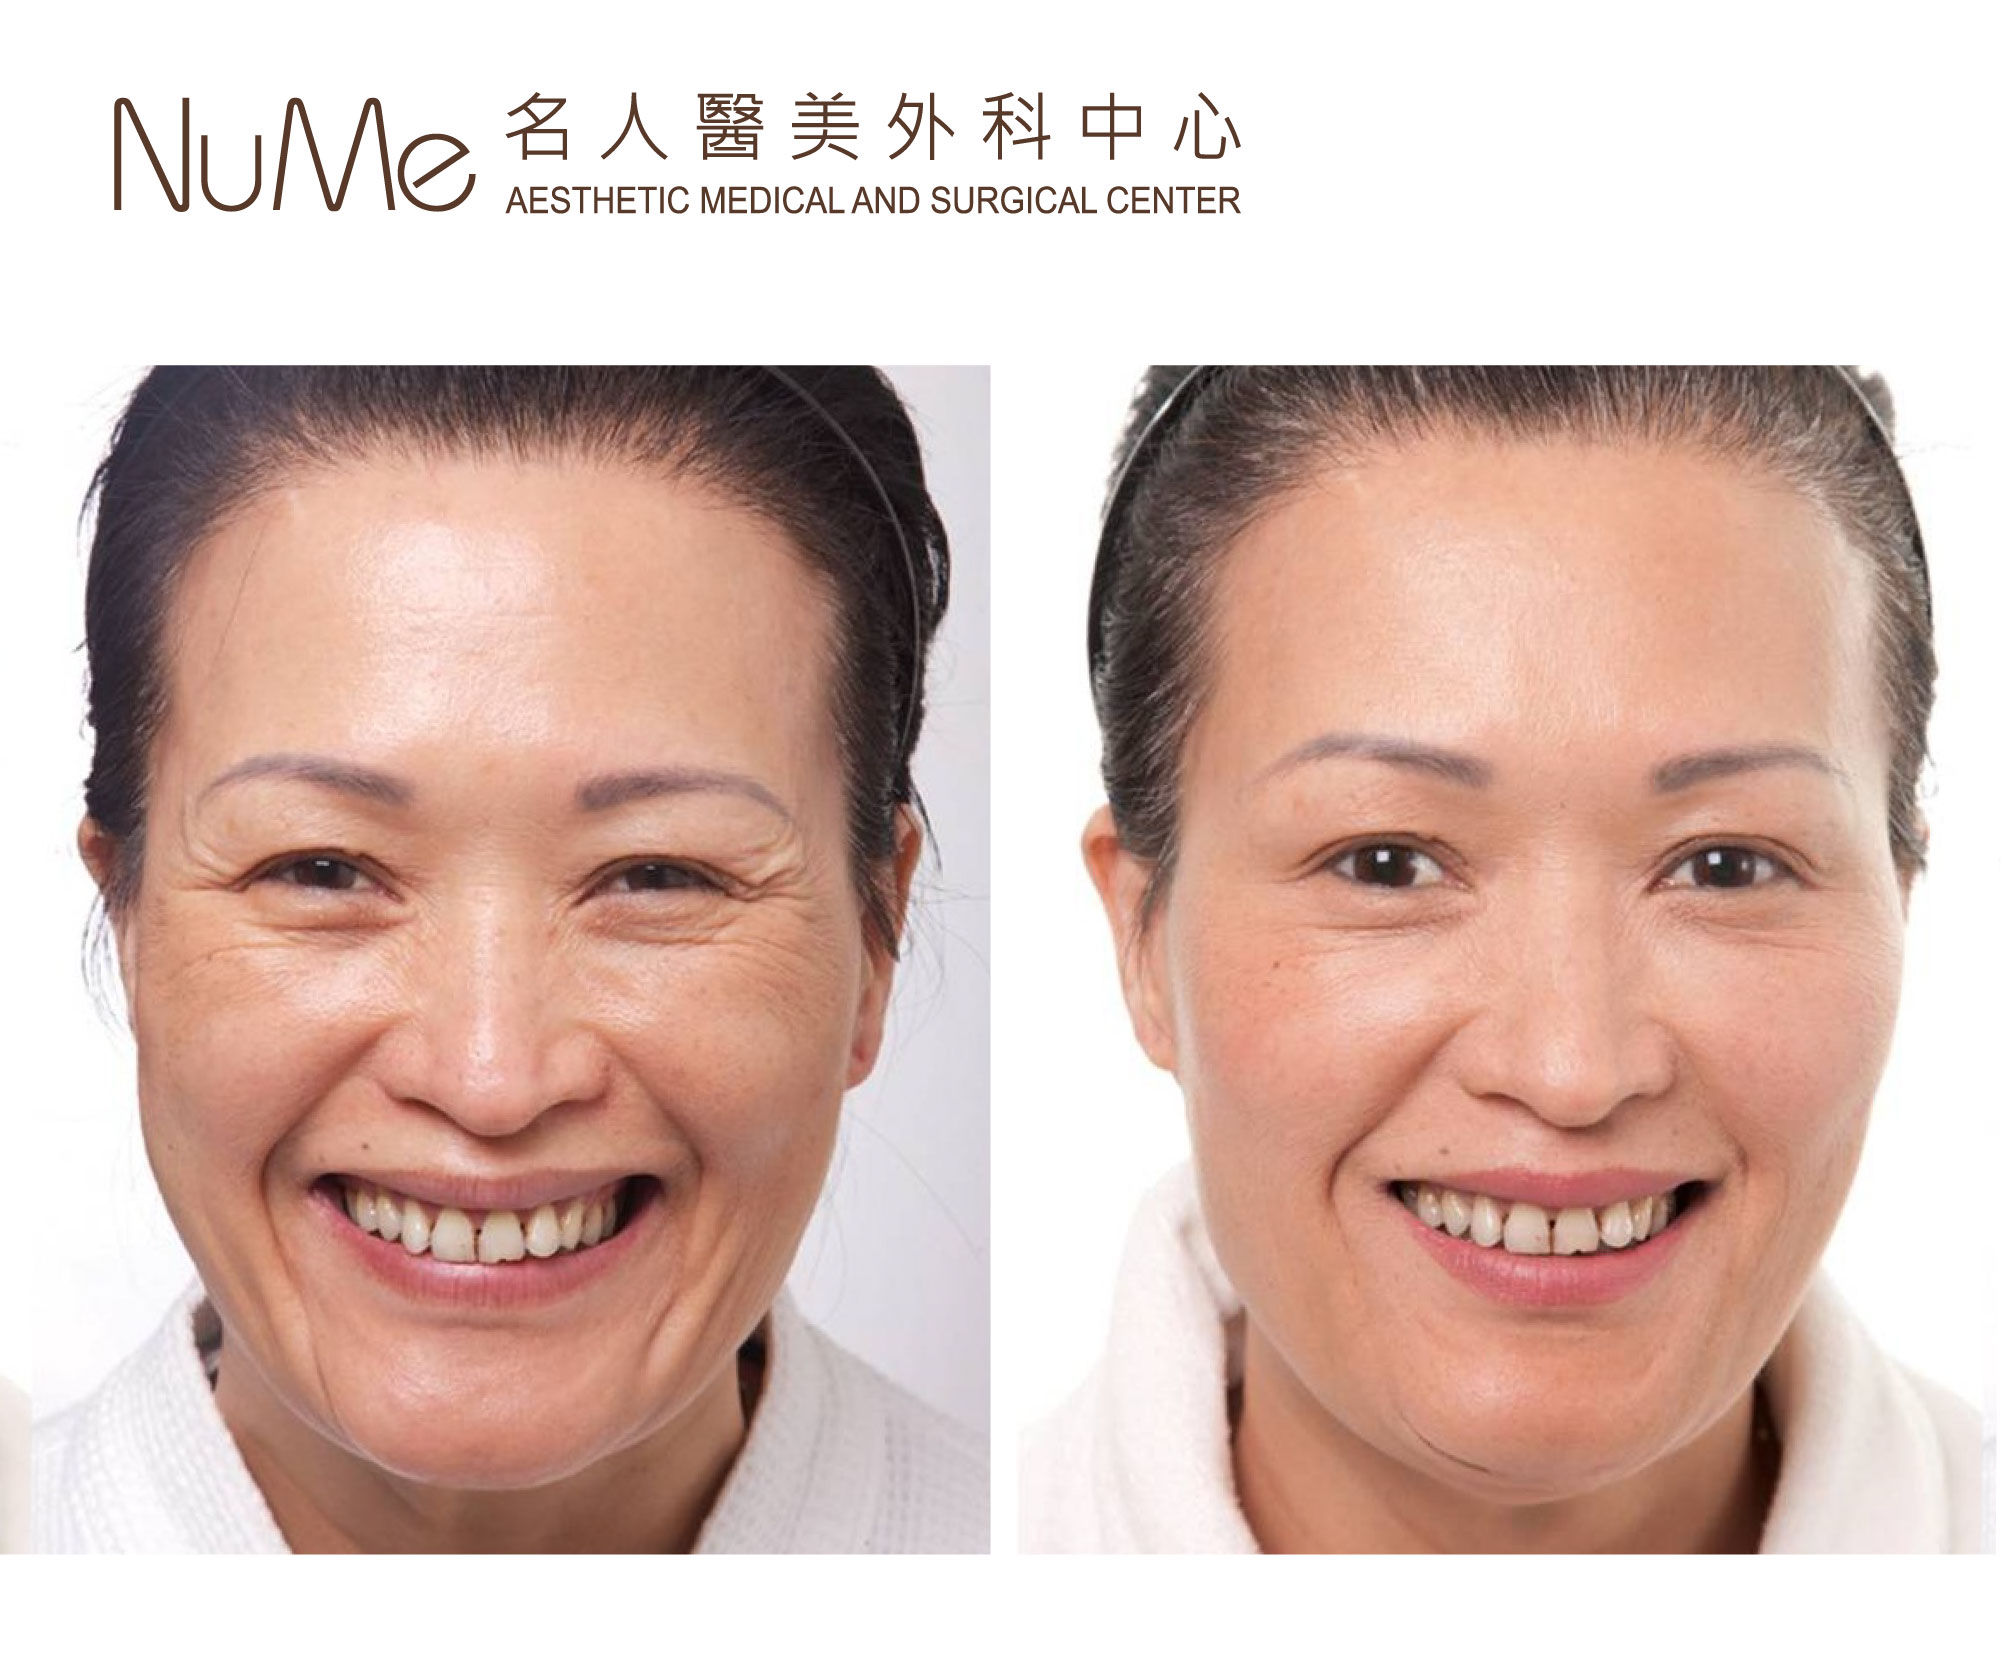 NuMe Facebook Before & After Photos (Comments) - Botox + Xeomin 瘦面-02_official - NuMe醫學美容中心